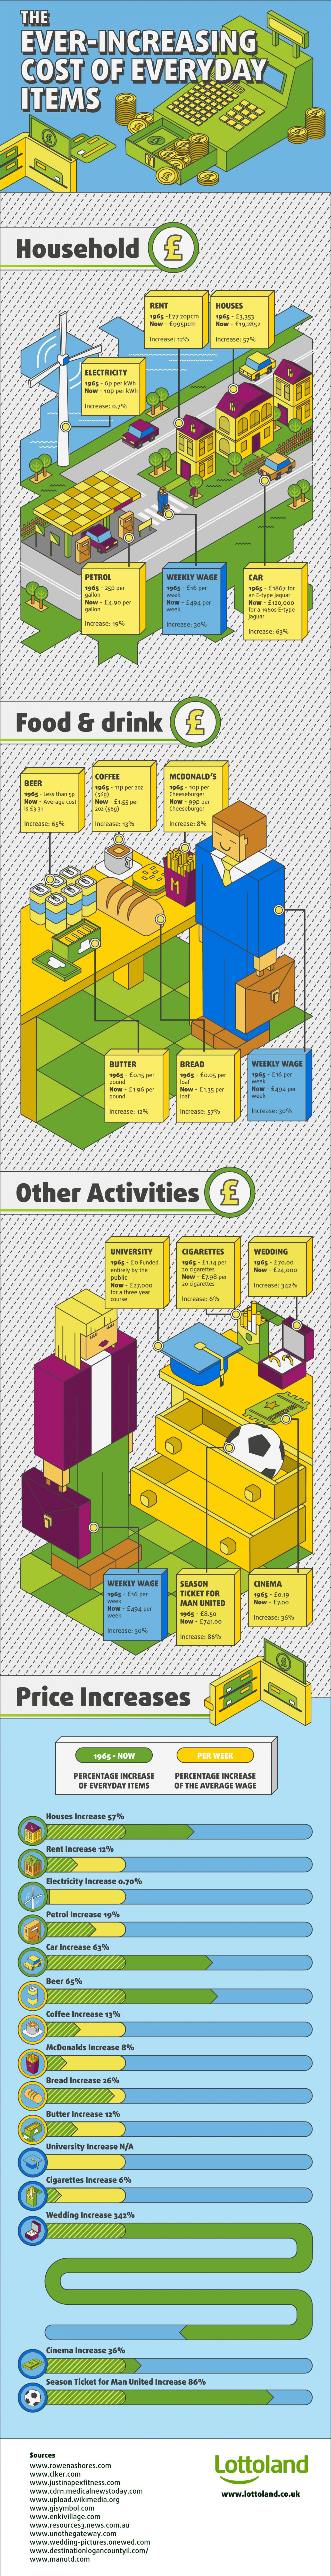 The Ever-Increasing Costs of Everyday Items Infographic